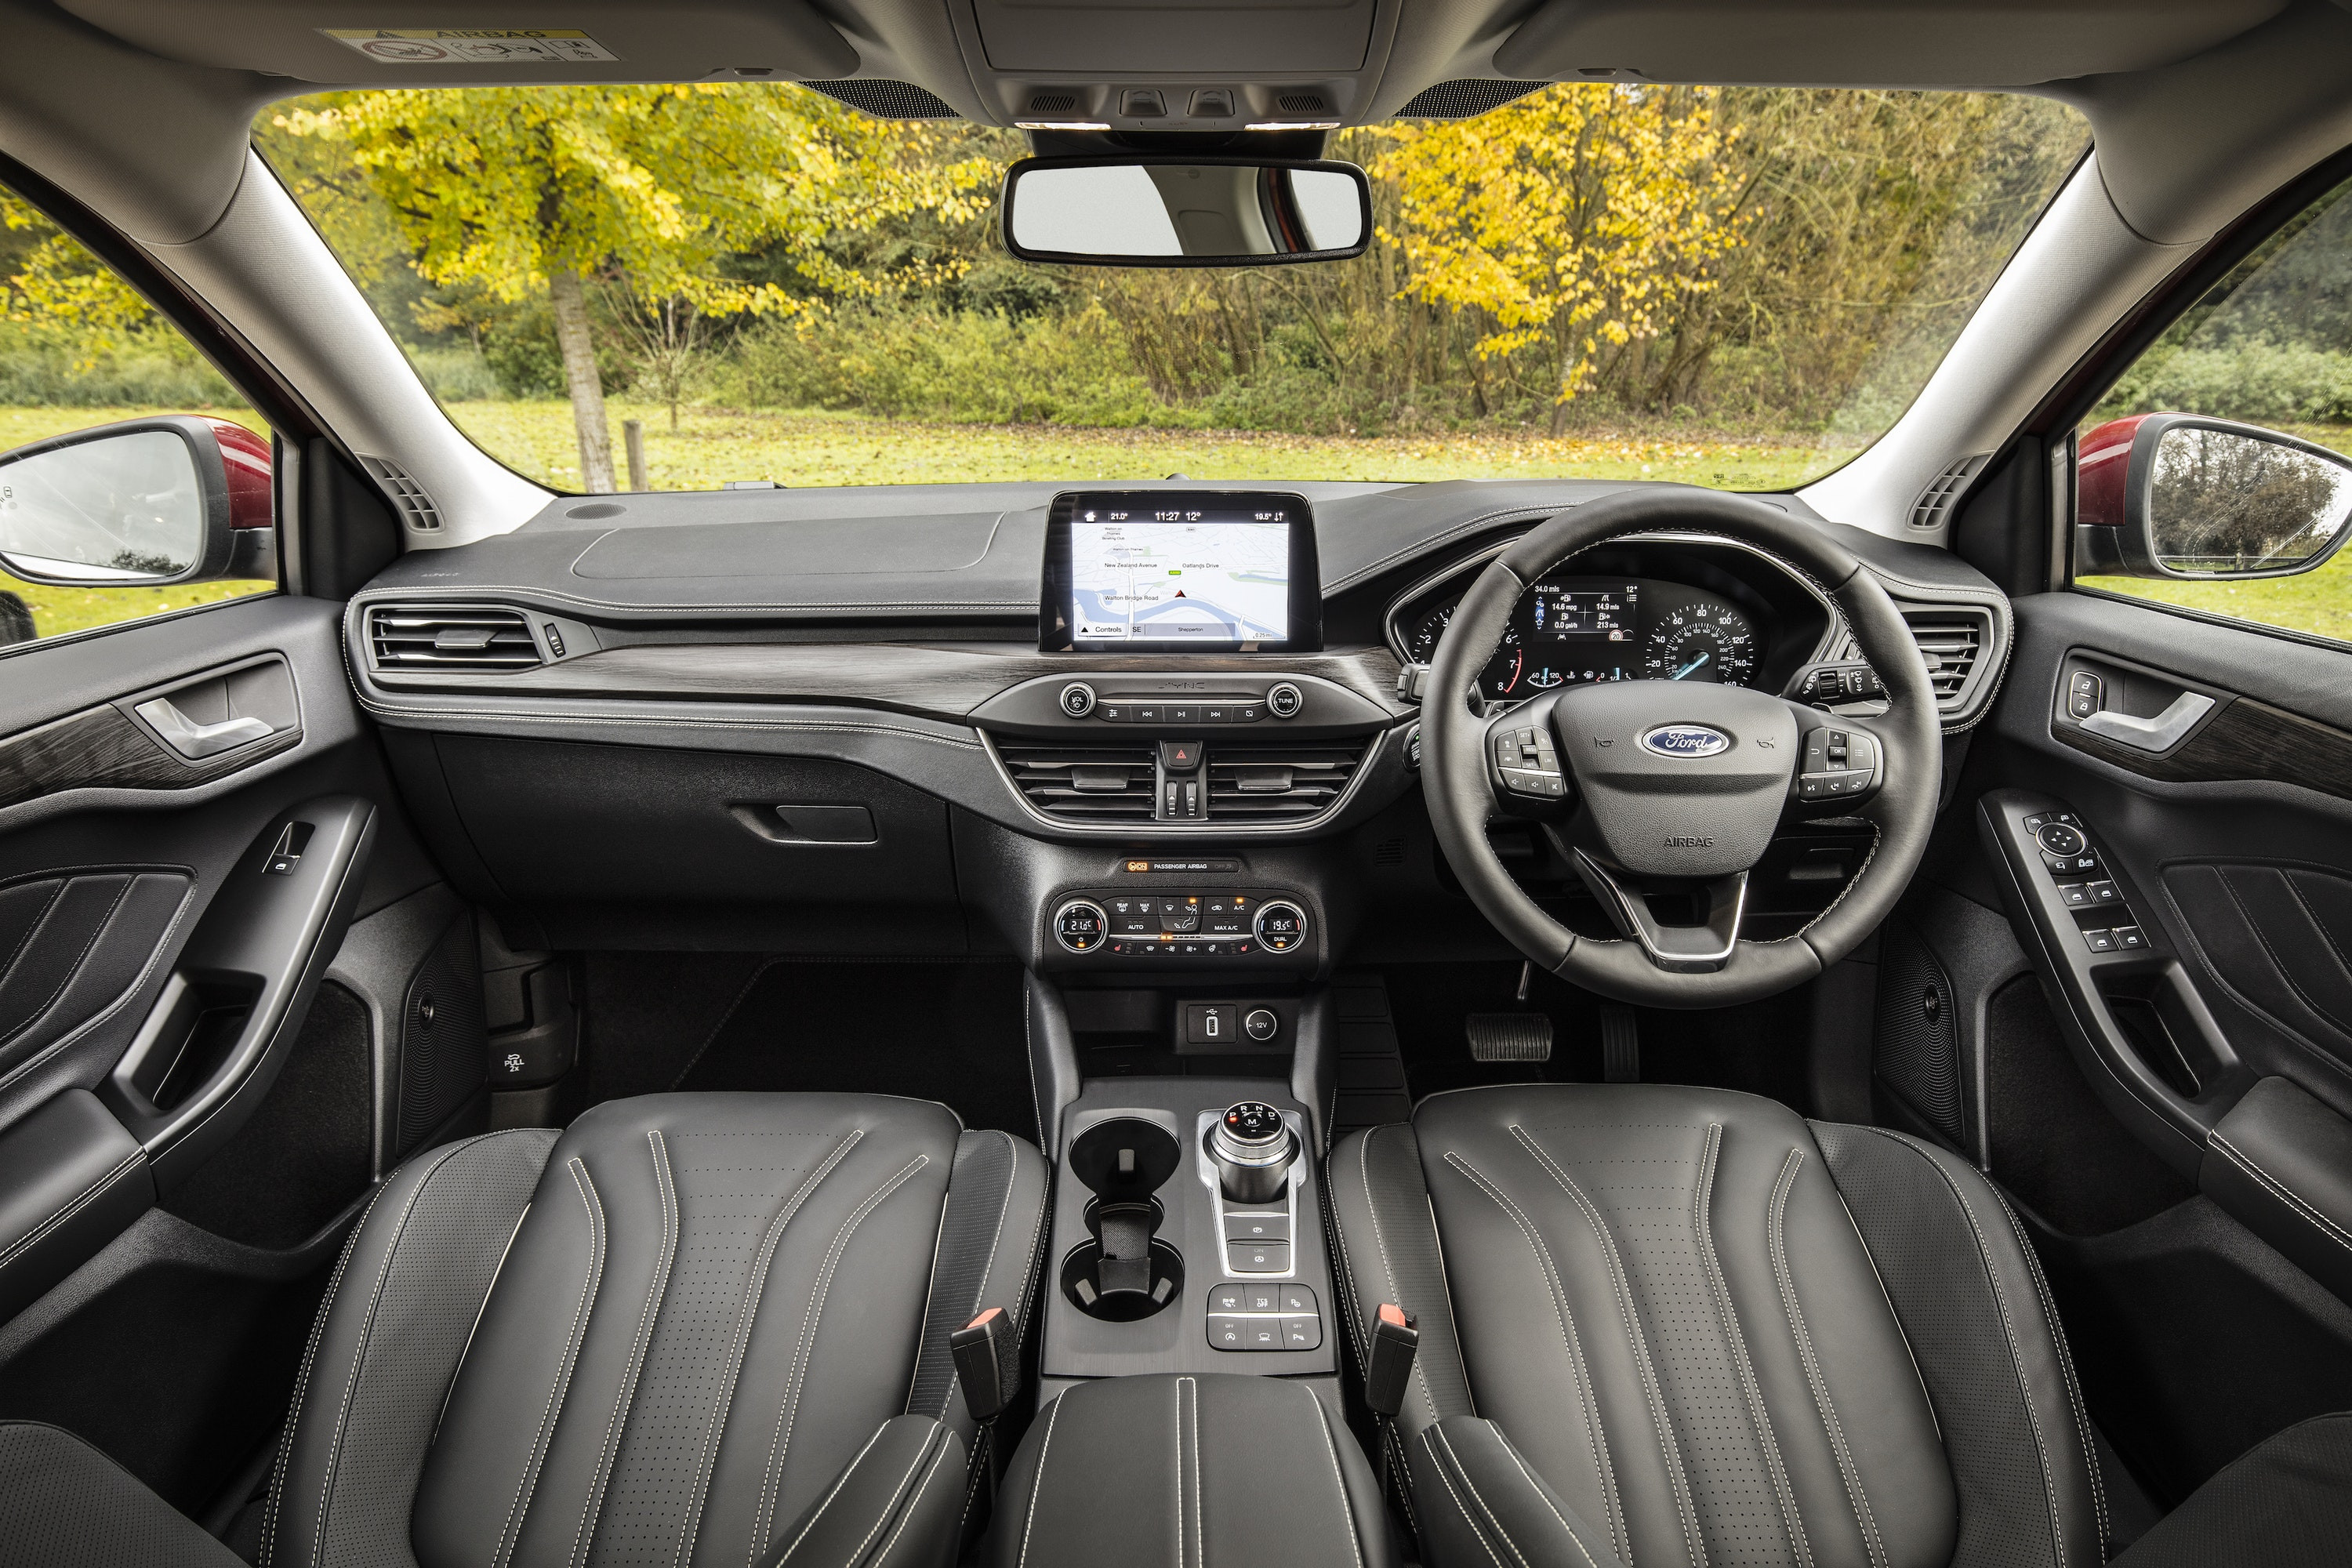 Interior of Ford Focus Vignale